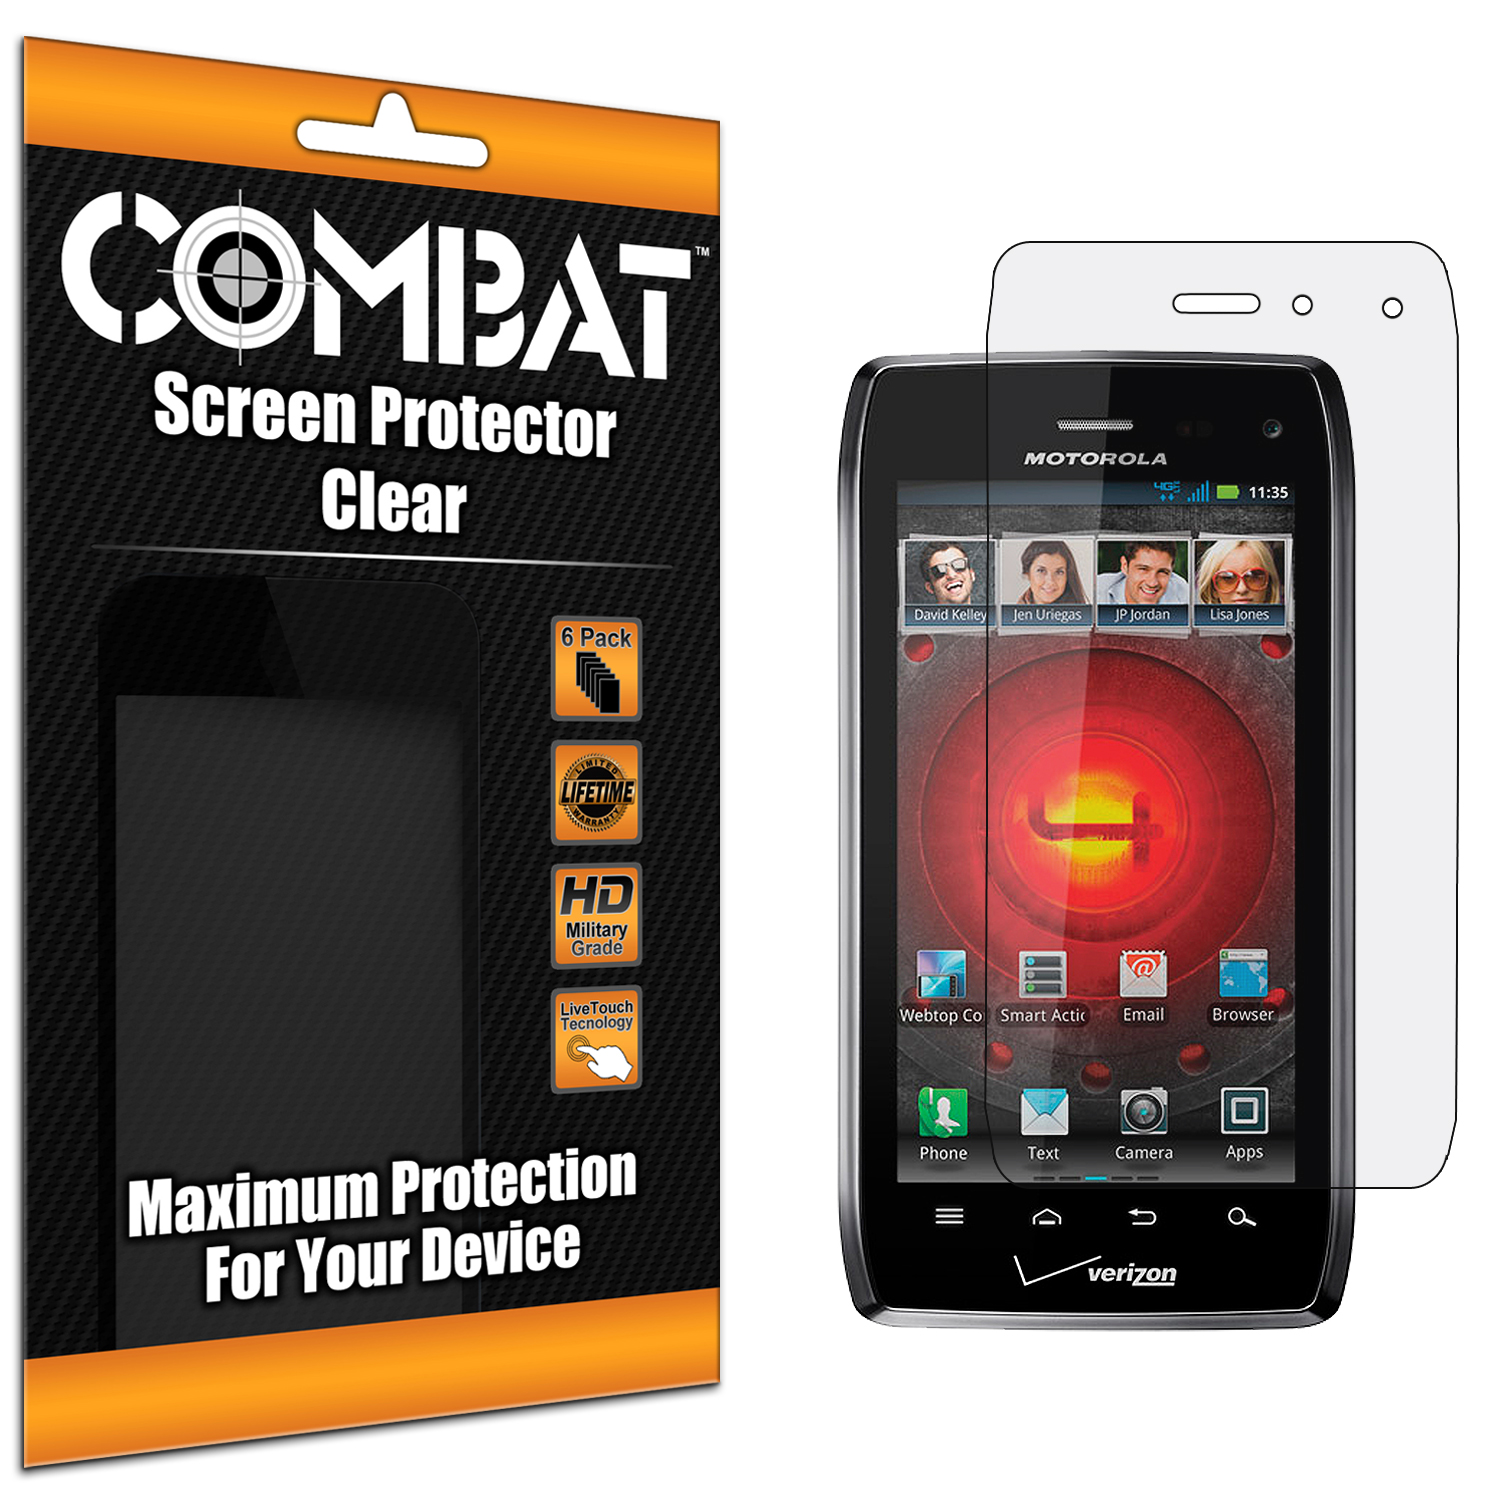 Motorola Droid 4 XT894 Combat 6 Pack HD Clear Screen Protector